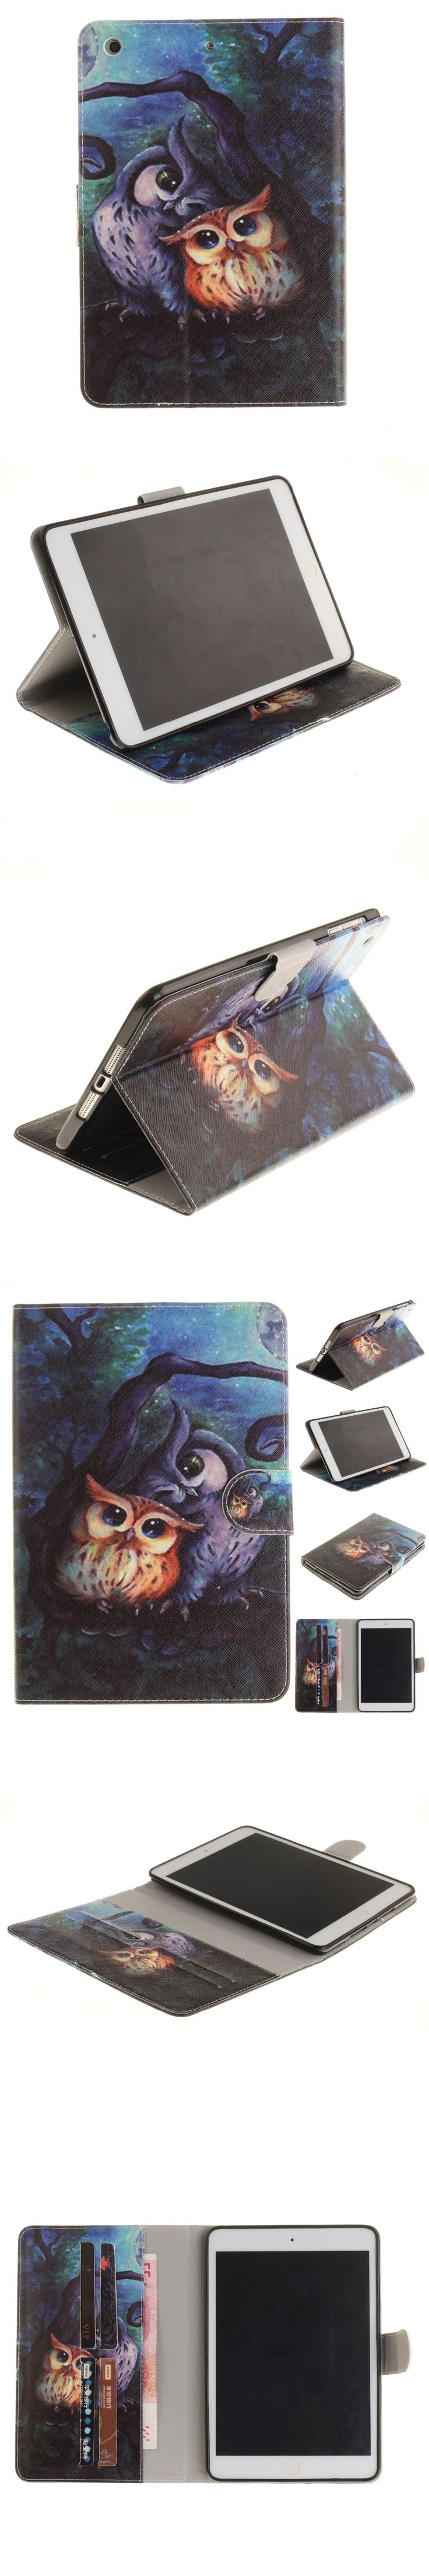 New Kid Cases for iPad Mini 3 2 1 Cute Owl Flip Folio PU Leather Case Cover for iPad Mini 3 2 1 Conque Capa with Card Slot